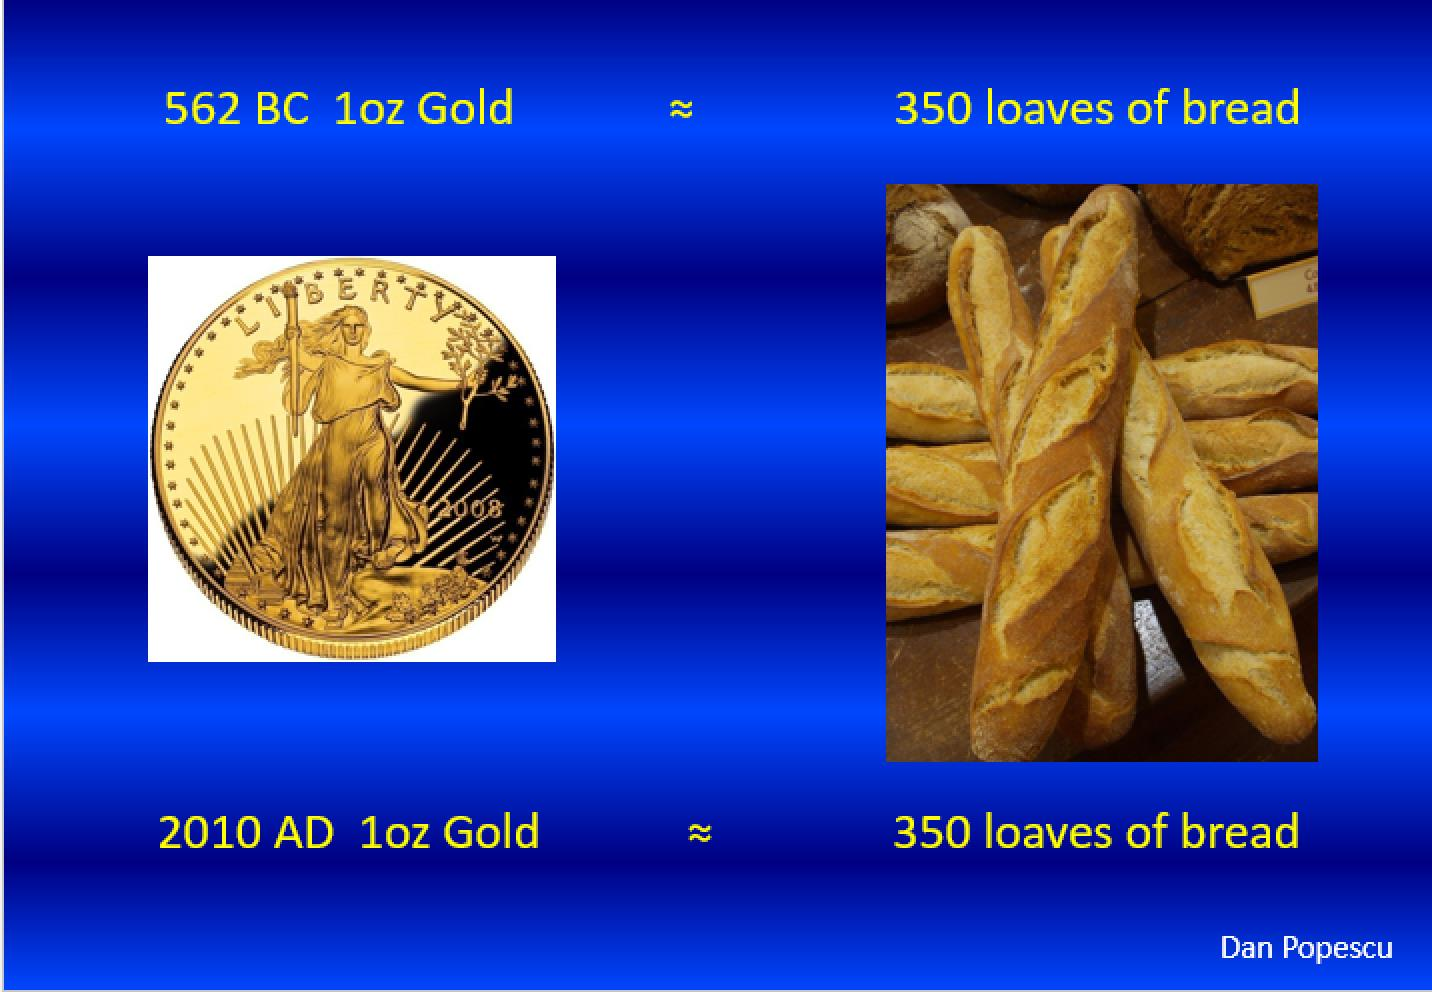 1oz gold, 350 loaves of bread